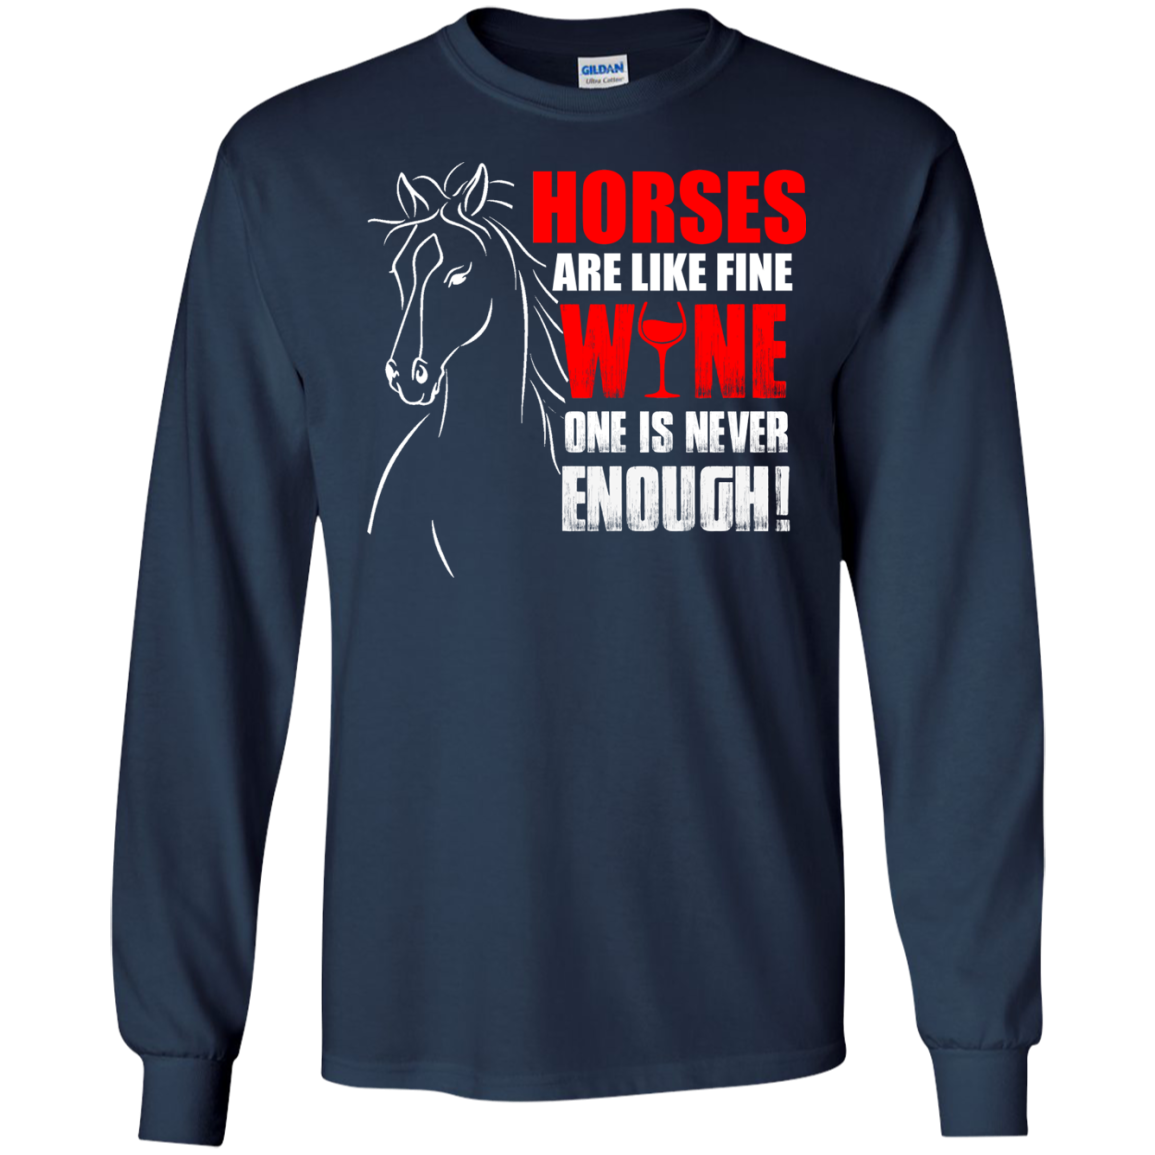 Horses Are Like Fine Wine One Is Never Enough! - Cool Shirt - The Sun Cat